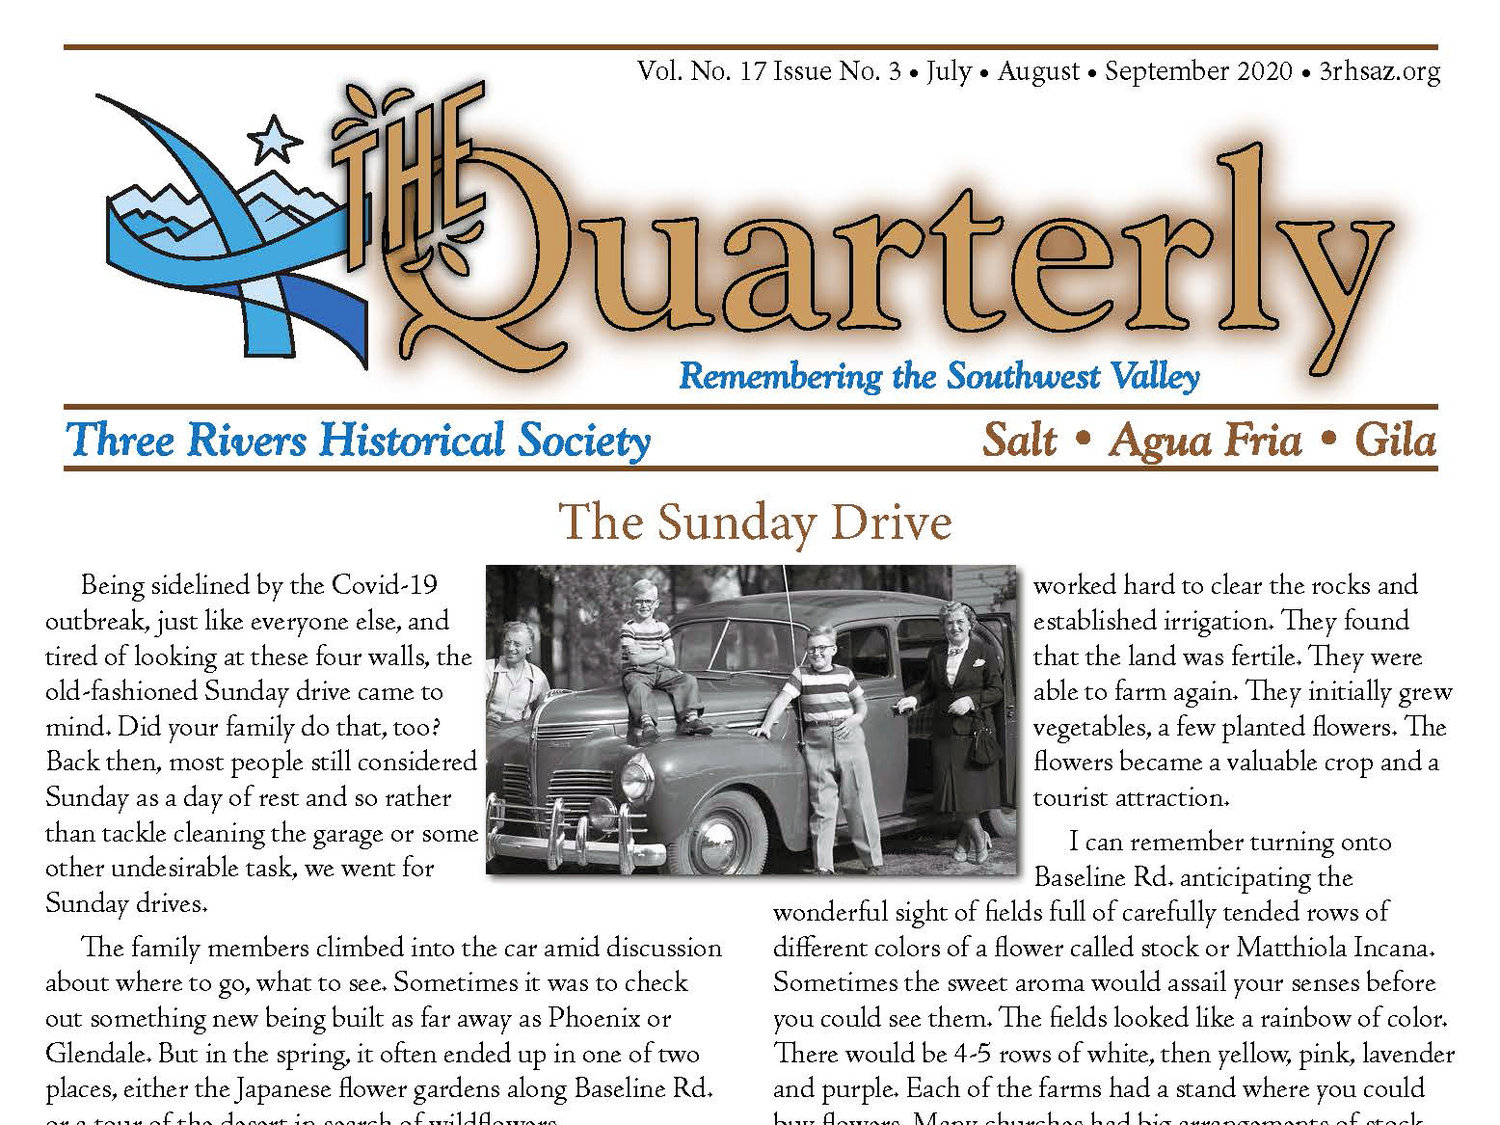 The Quarterly is a publication of the Three Rivers Historical Society published four times a year. The fall edition is scheduled to come out in October.